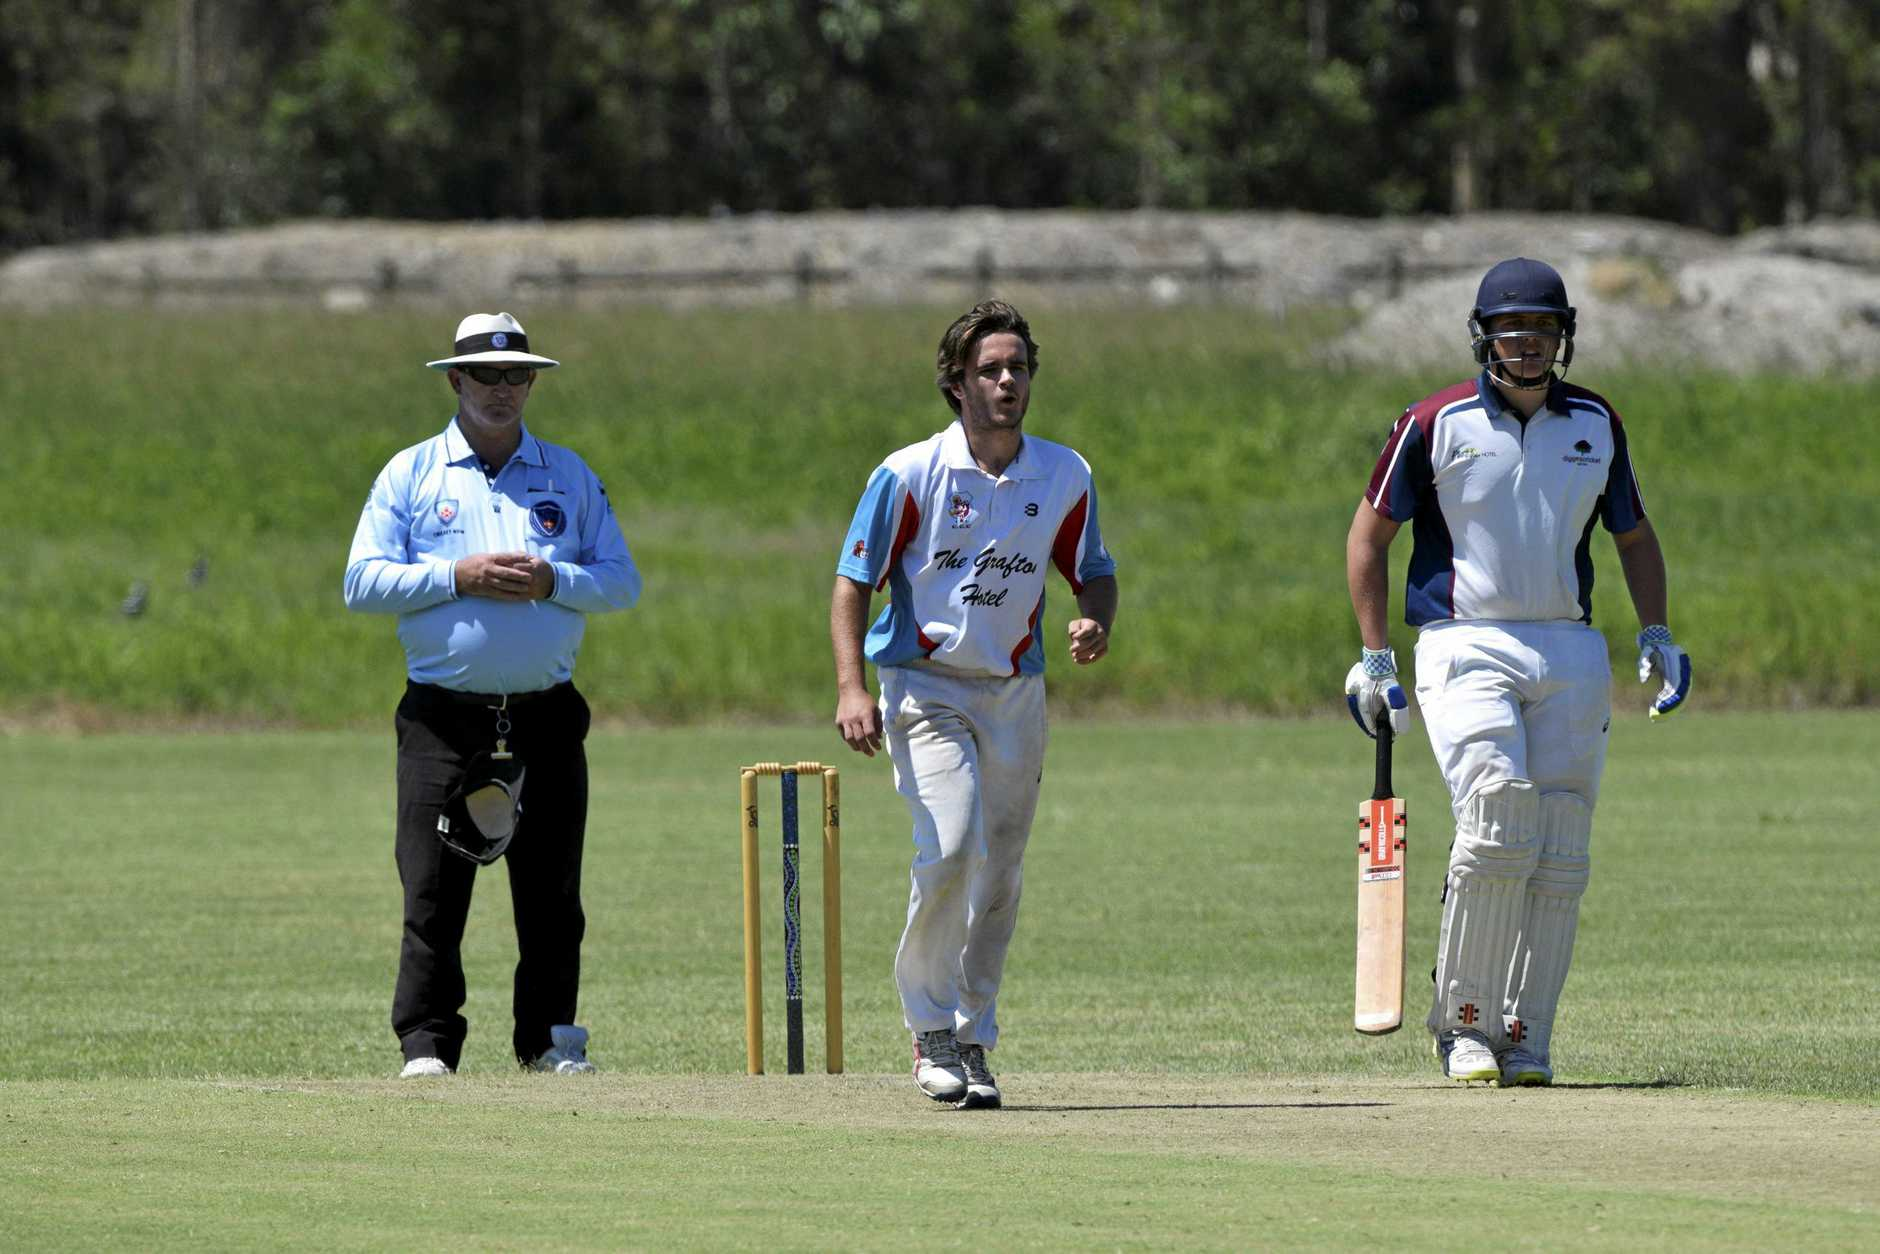 Eli Fahey bowled an incredible spell for the Coutts-Coffs Colts on Saturday against Diggers.